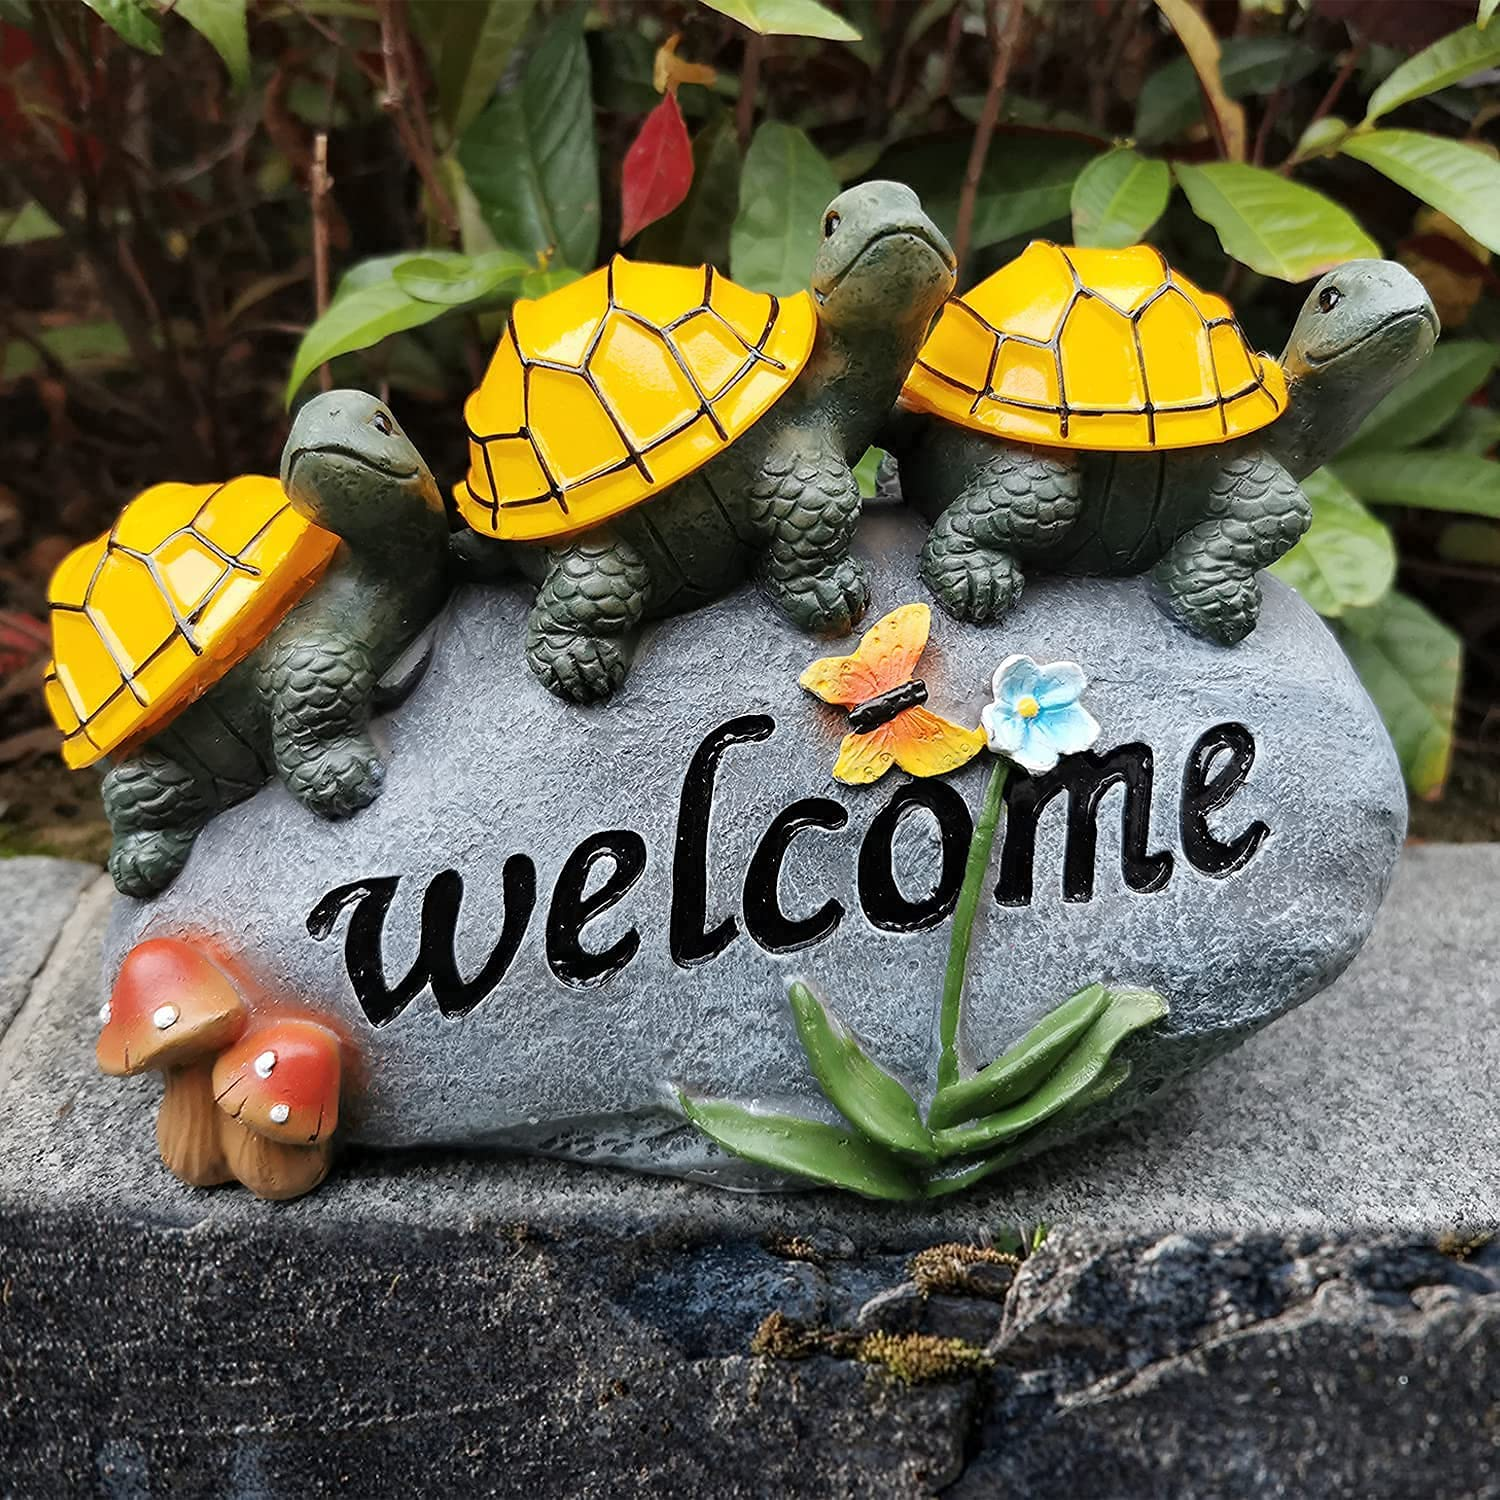 Solar Garden Statue Turtle Seattle Mall Figurine Turtles Rock Welcome Branded goods a on